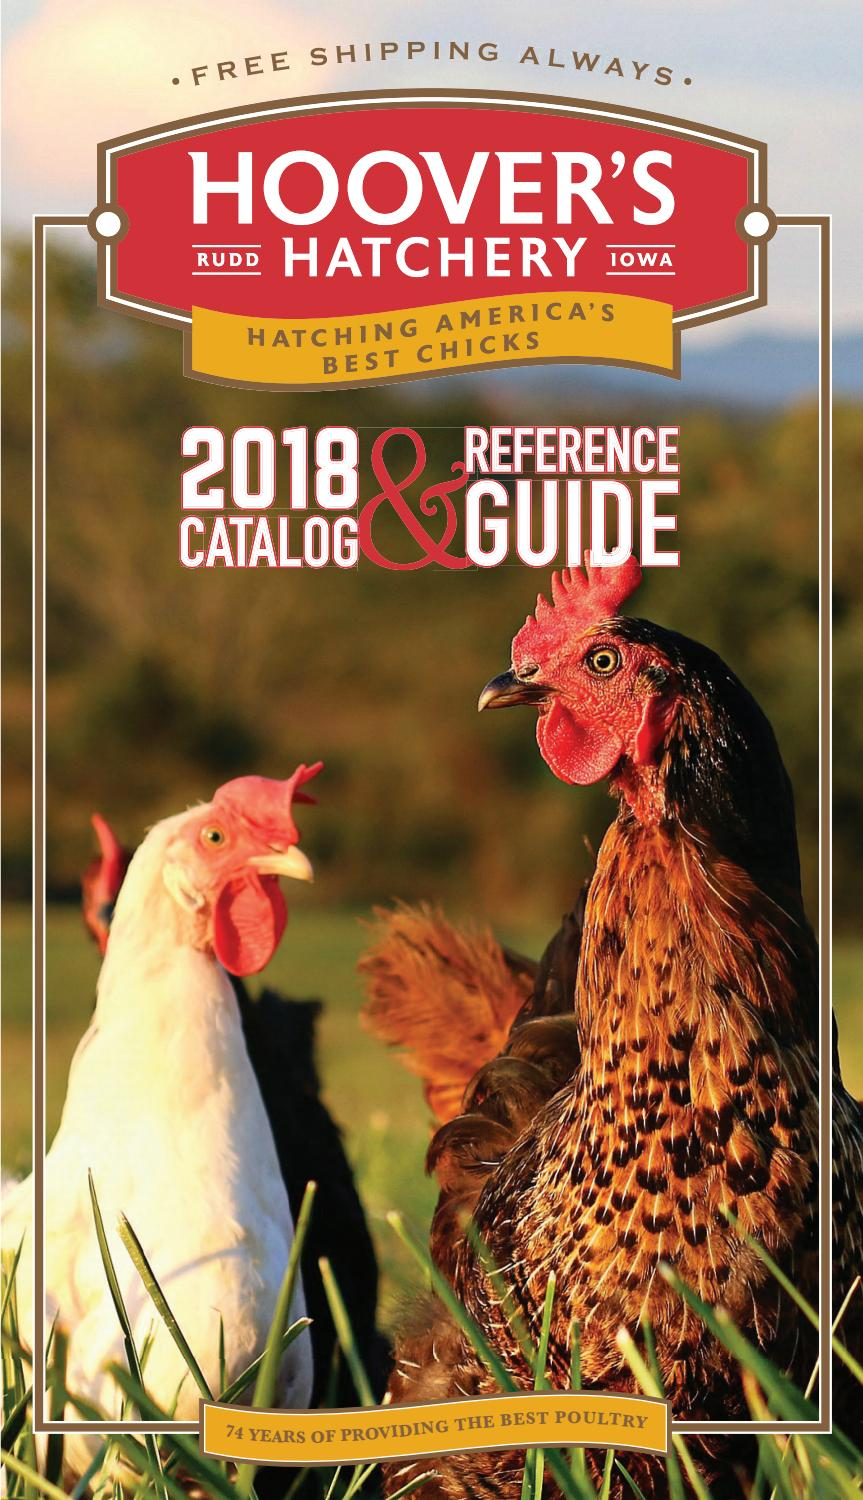 2018 Hoover's Hatchery Catalog & Reference Guide by Alicia